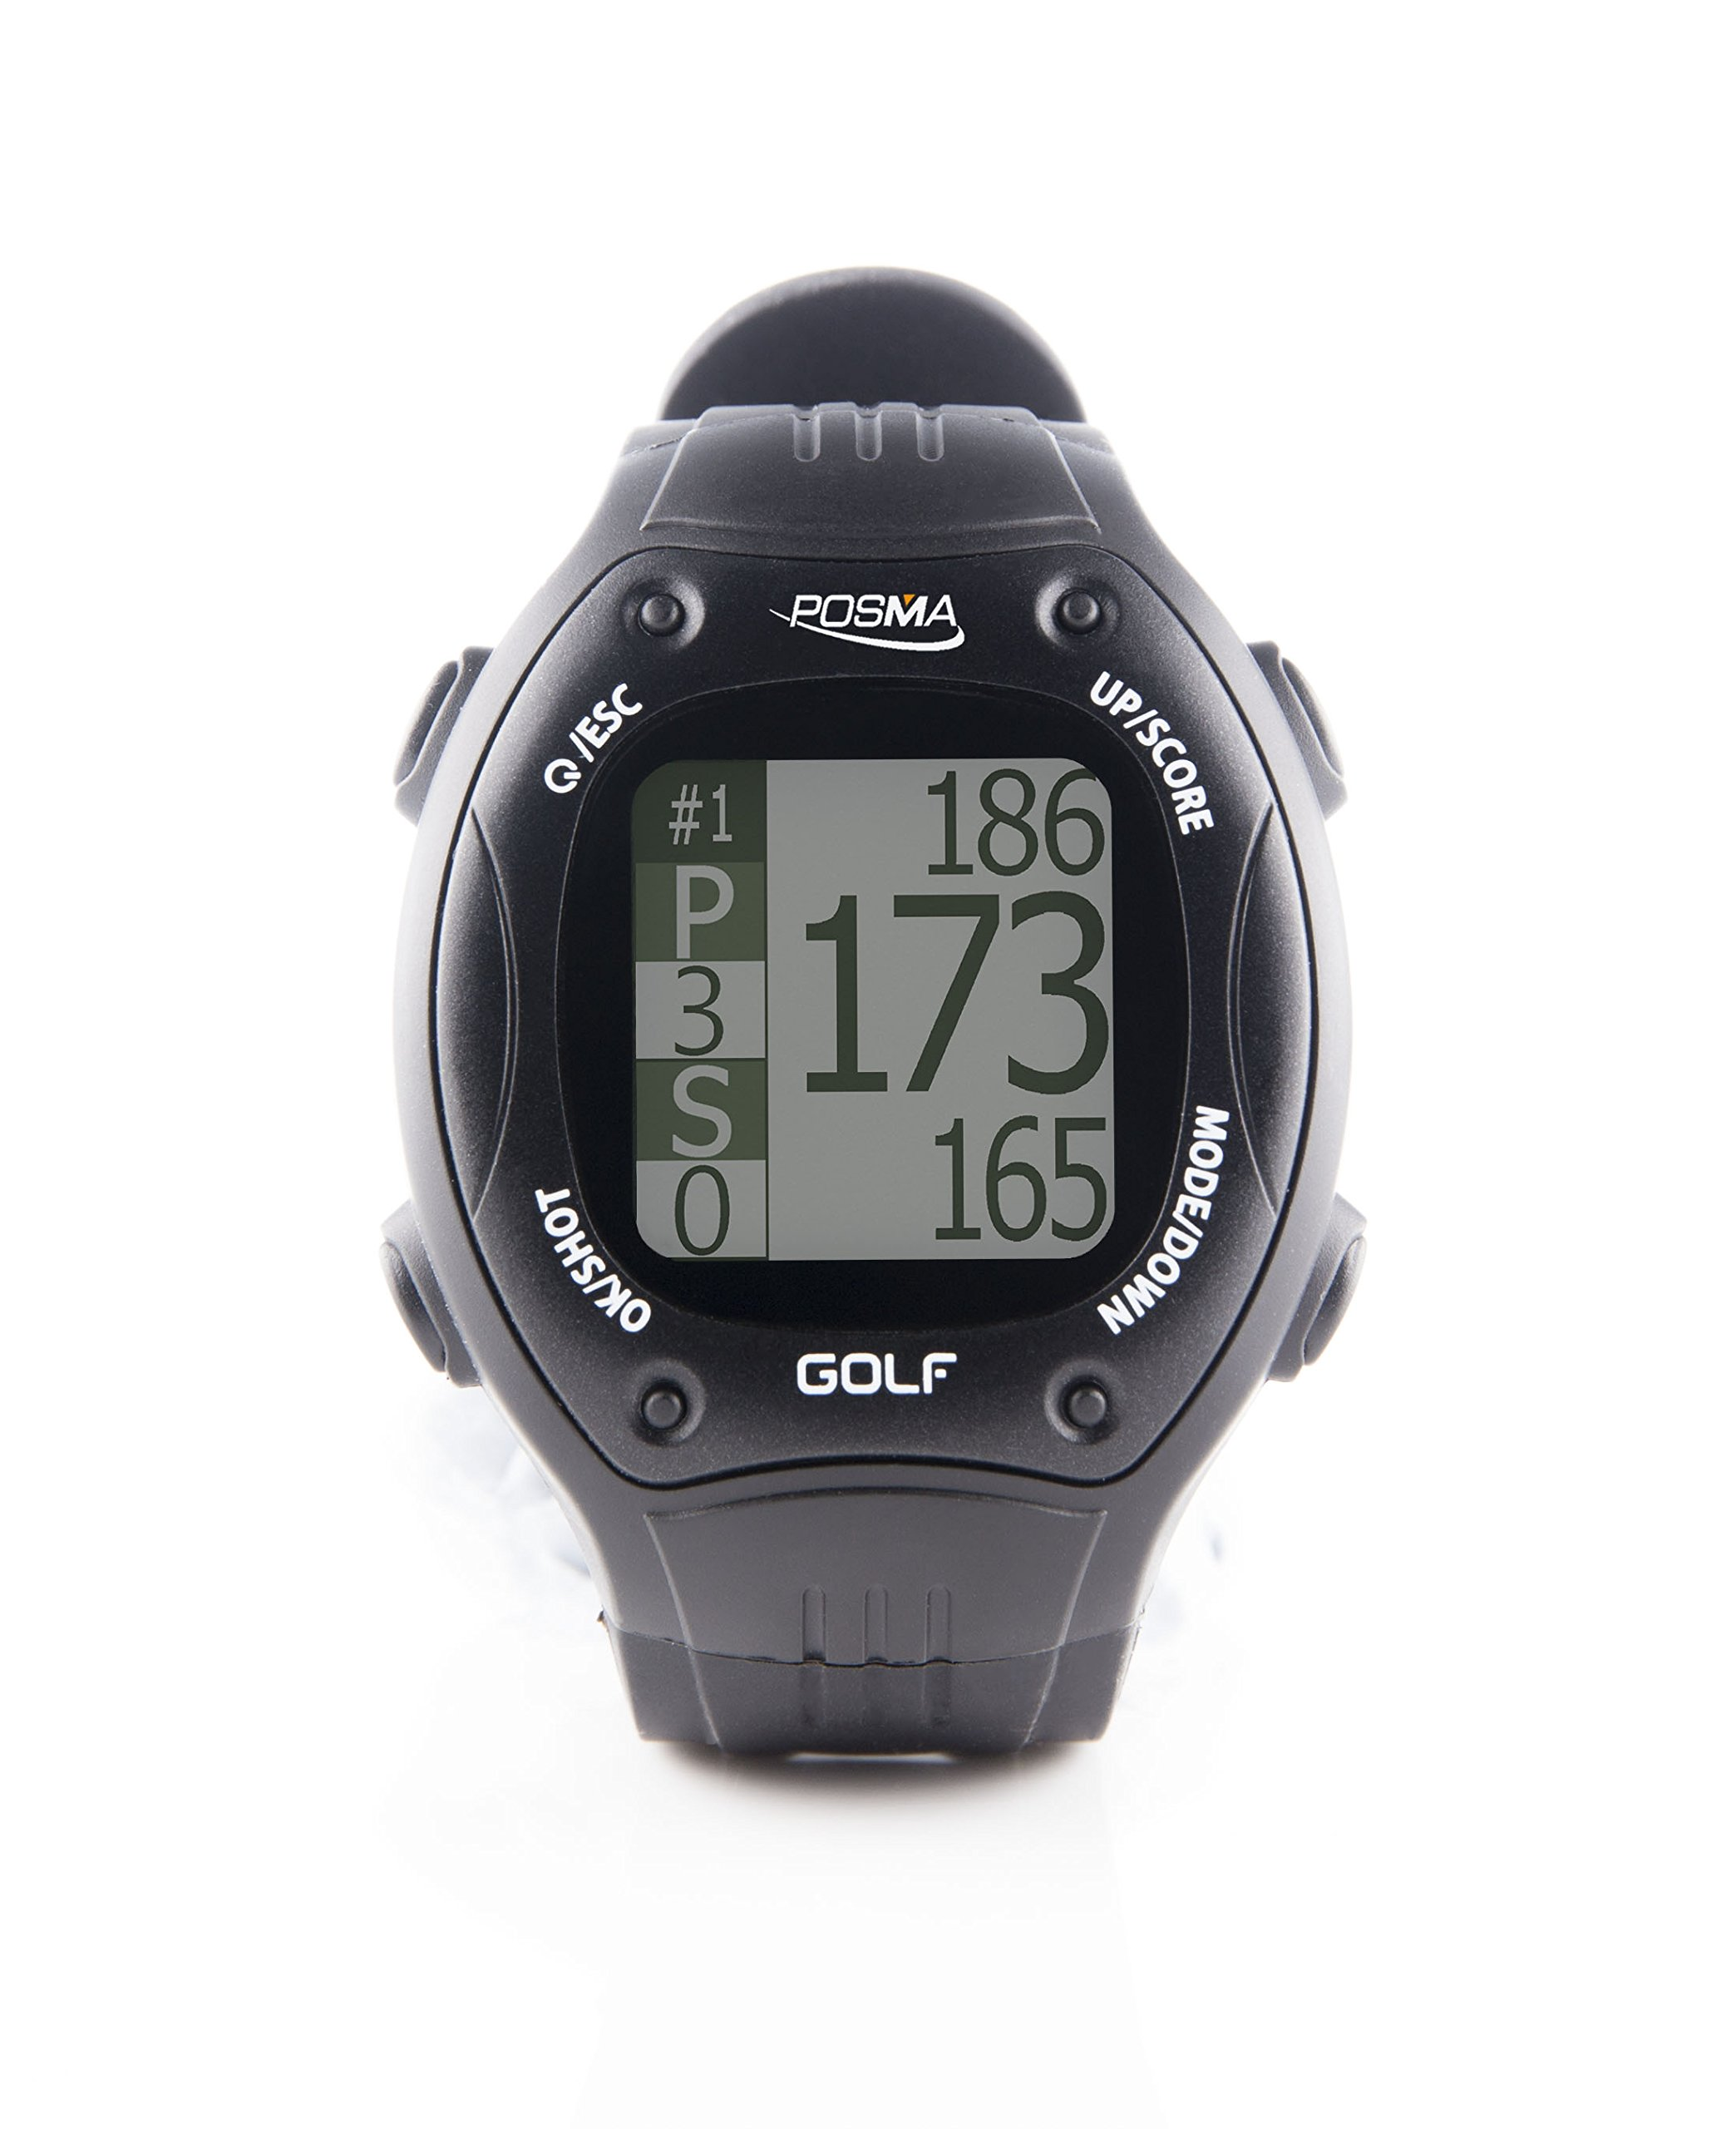 POSMA GT1+ Golf Trainer GPS Golf Watch Range Finder, Preloaded Golf Courses, no Download no Subscription, Black. Global Courses incl. US, Canada, Europe, Australia, New Zealand, Asia by POSMA